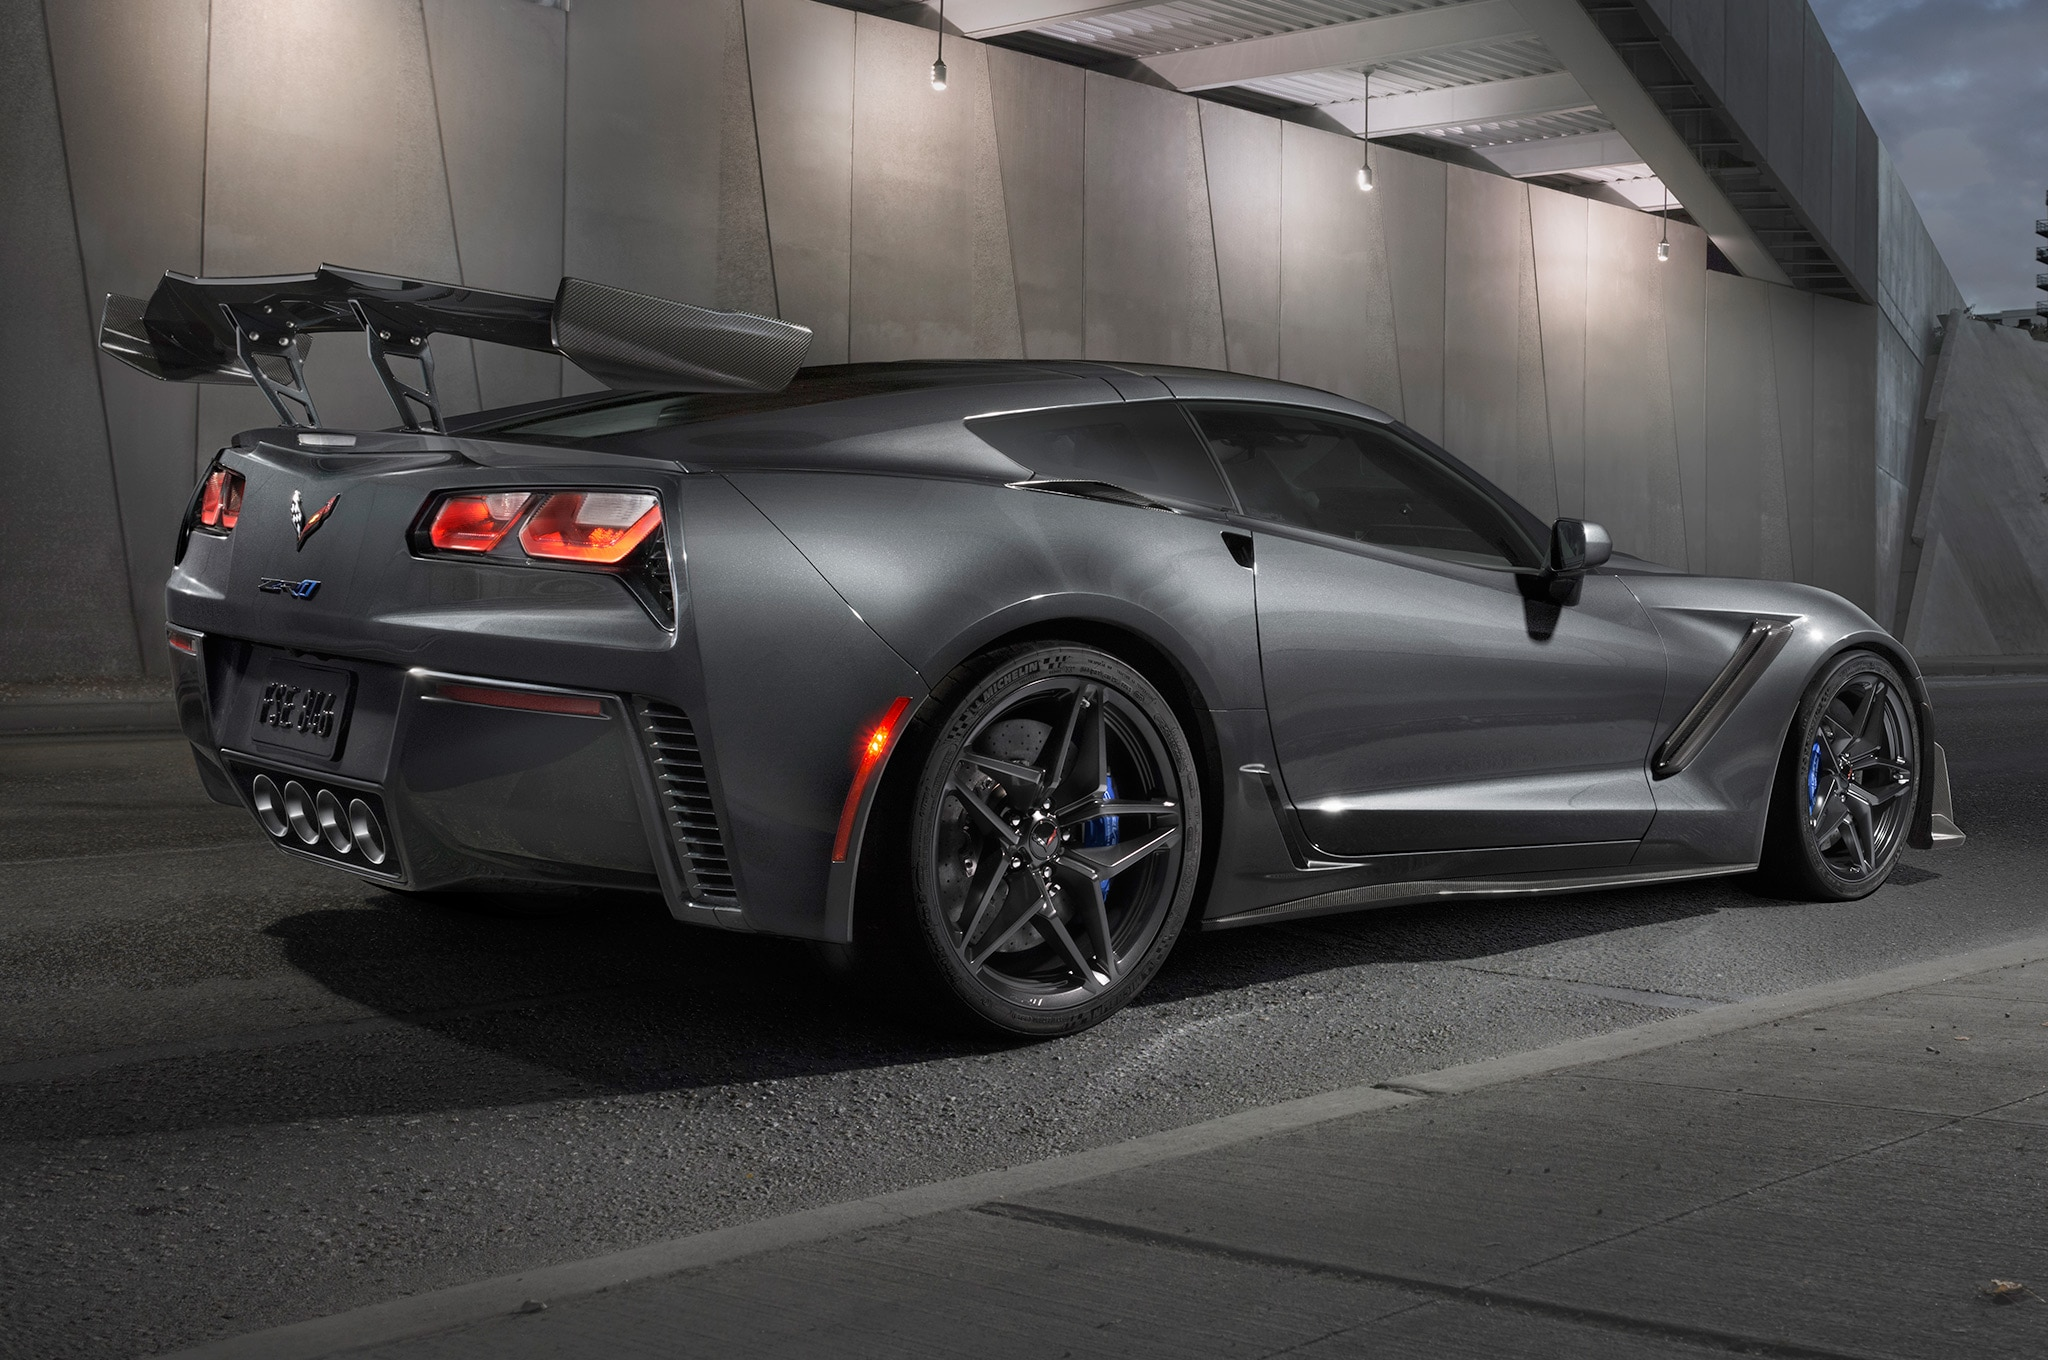 Chevy Corvette ZR1 Unveiled in Dubai With 755 HP